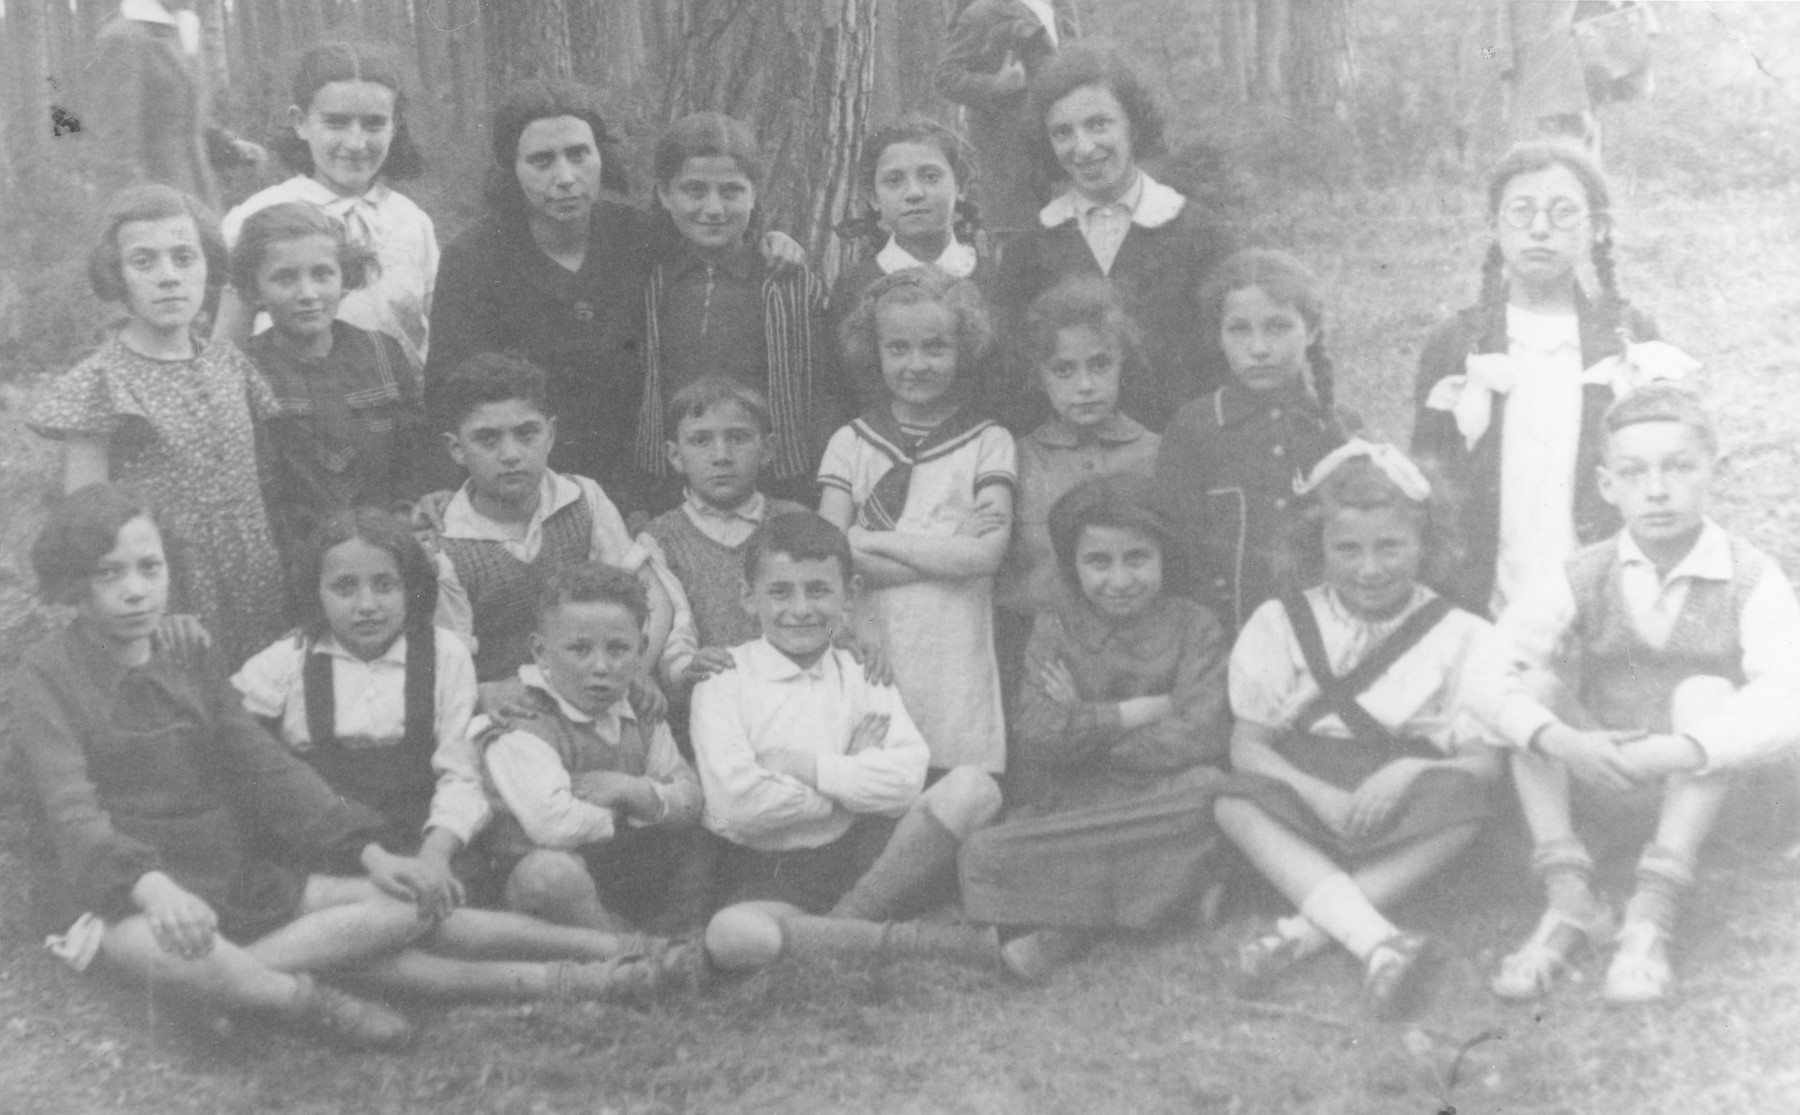 Group portrait of Jewish children from the Tarbut school in Ostrow Mazowiecka on an outing in the woods.  Among those pictured are the teacher Mrs. Shedletcka (top row, second from the left); her son, Aaron Rubinstein (front row, center); Chana Schwartz (front row, second from the right); Shimon Epstein (front row, first on the right); Lea Rubinstein (middle row, first on the left); Moniek Lichtenstein (middle row, third from the left); Miryam Galant (top row, third from the right); Moshe Friedman (middle row, center); and Tema Sosnowska (middle row, fourth from the right).